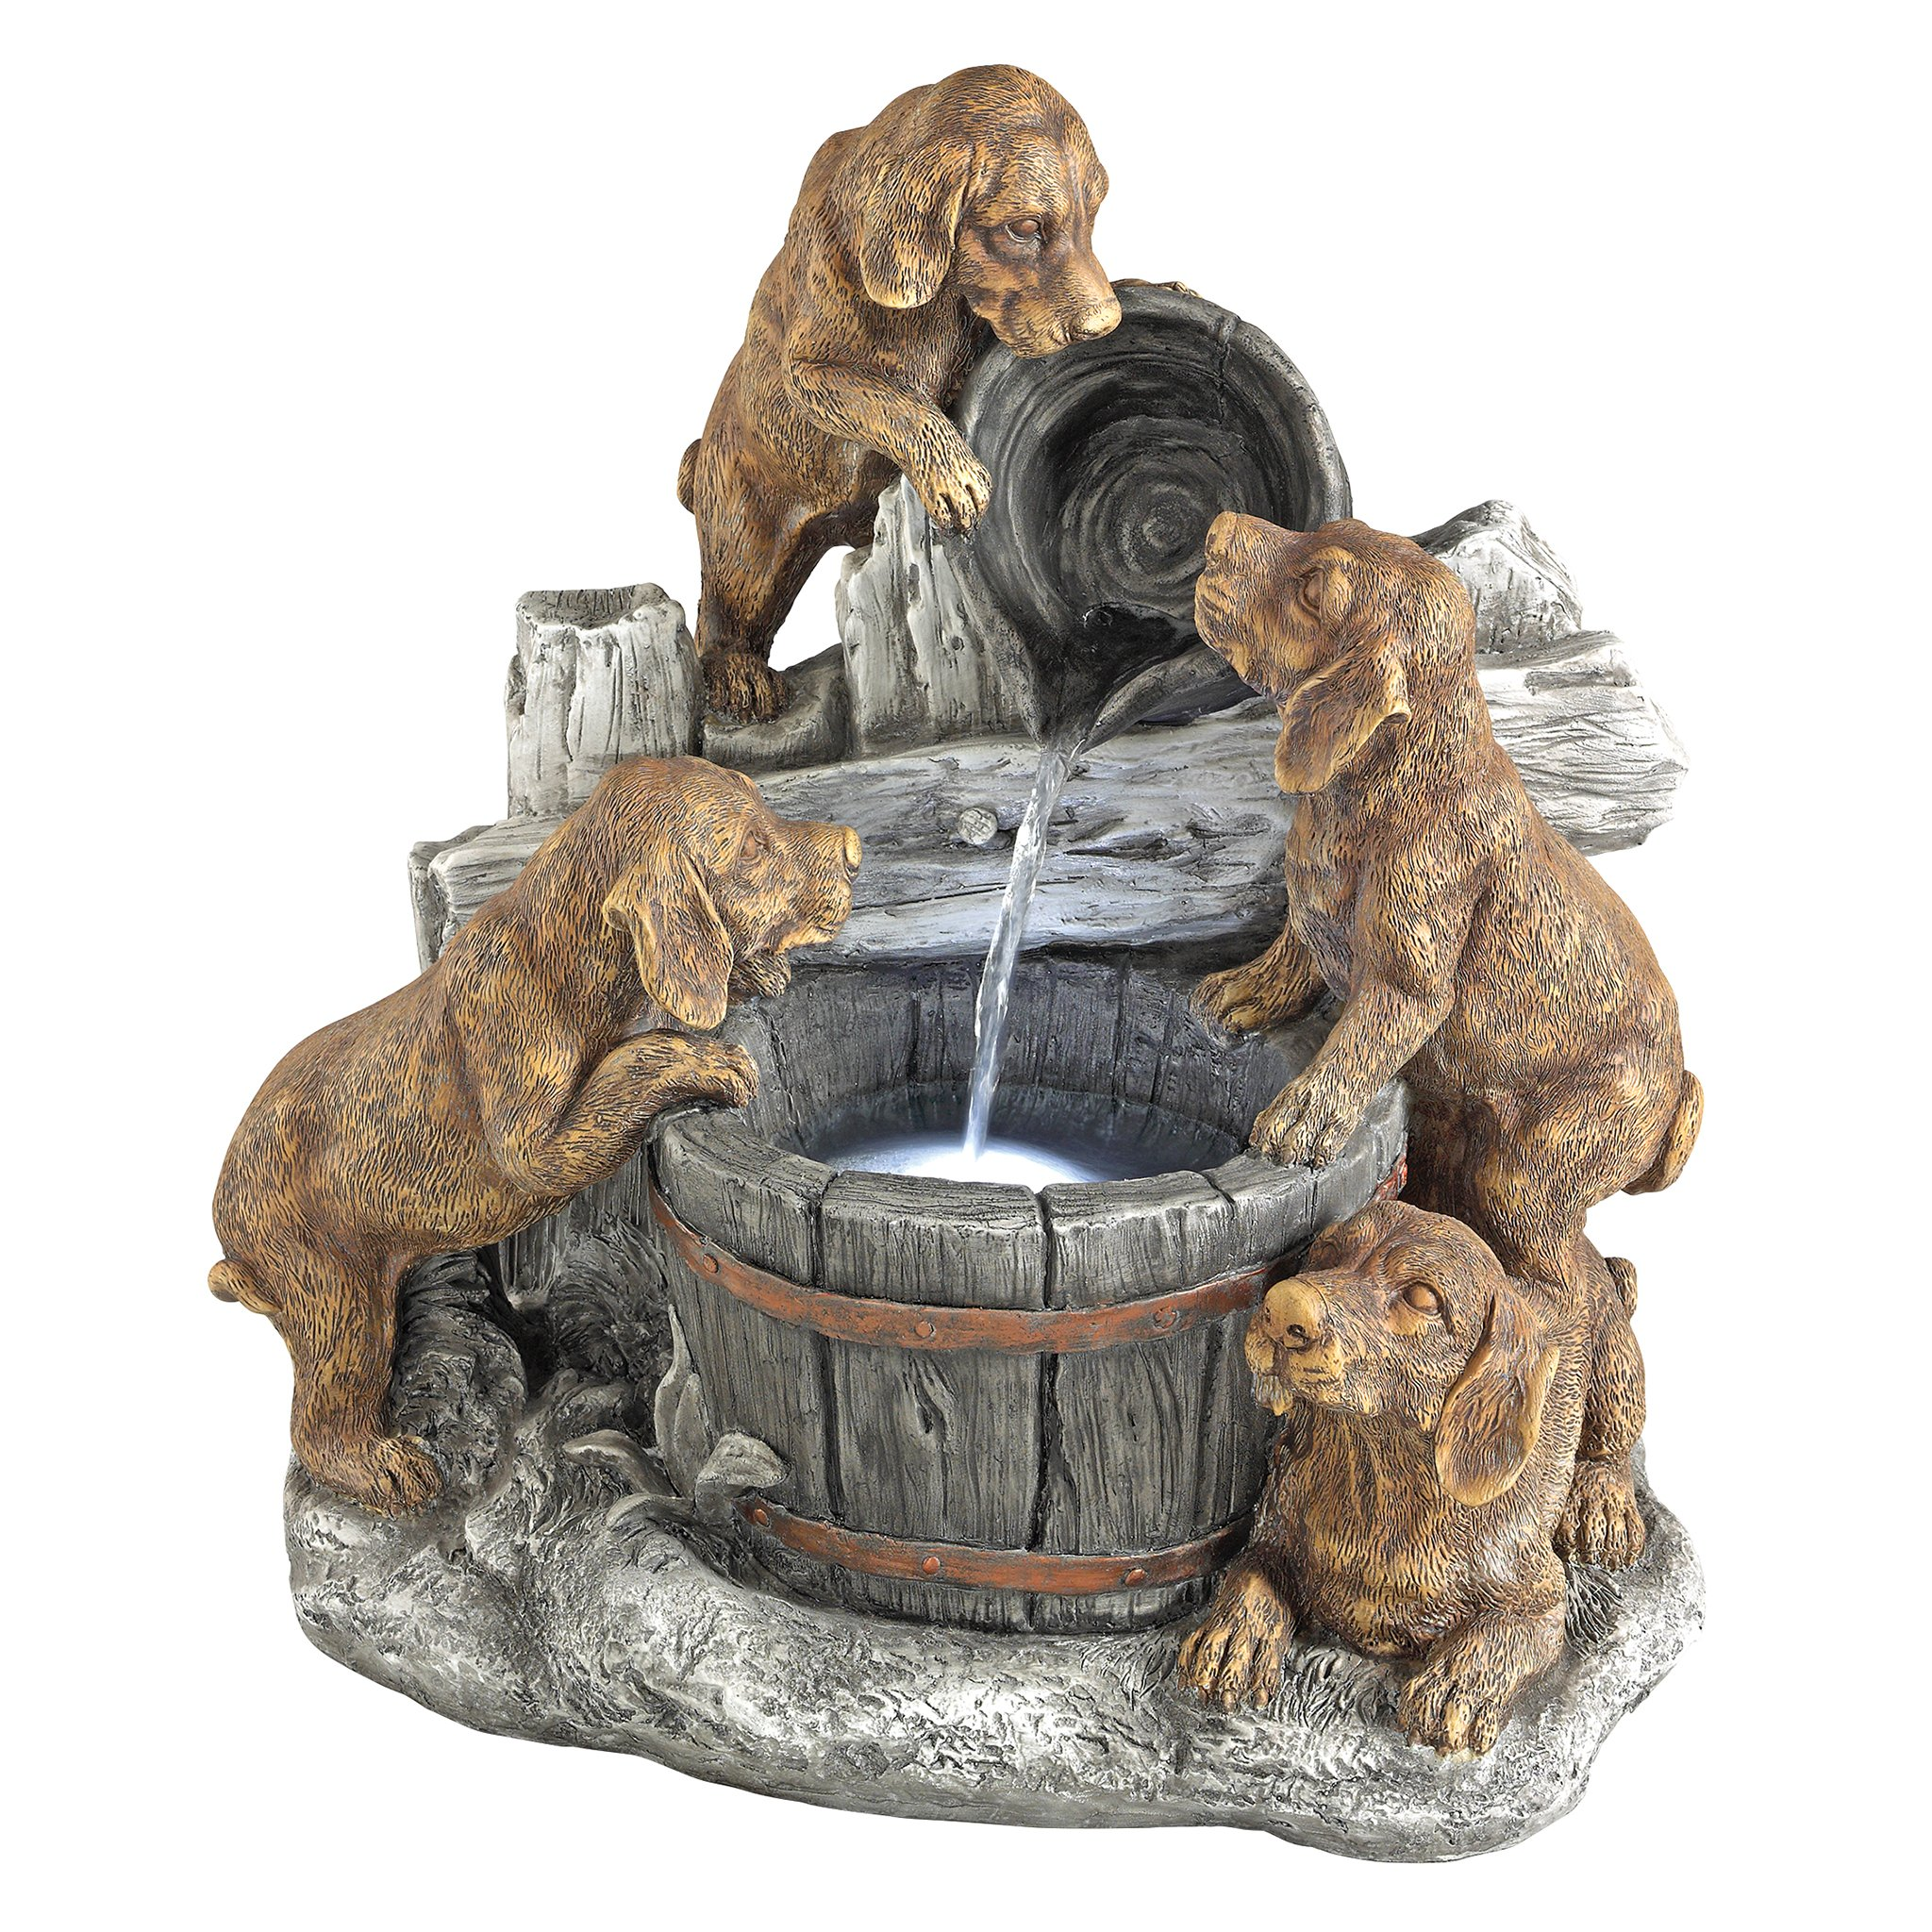 Design Toscano Puppy Pail Pour Garden Fountain by Design Toscano